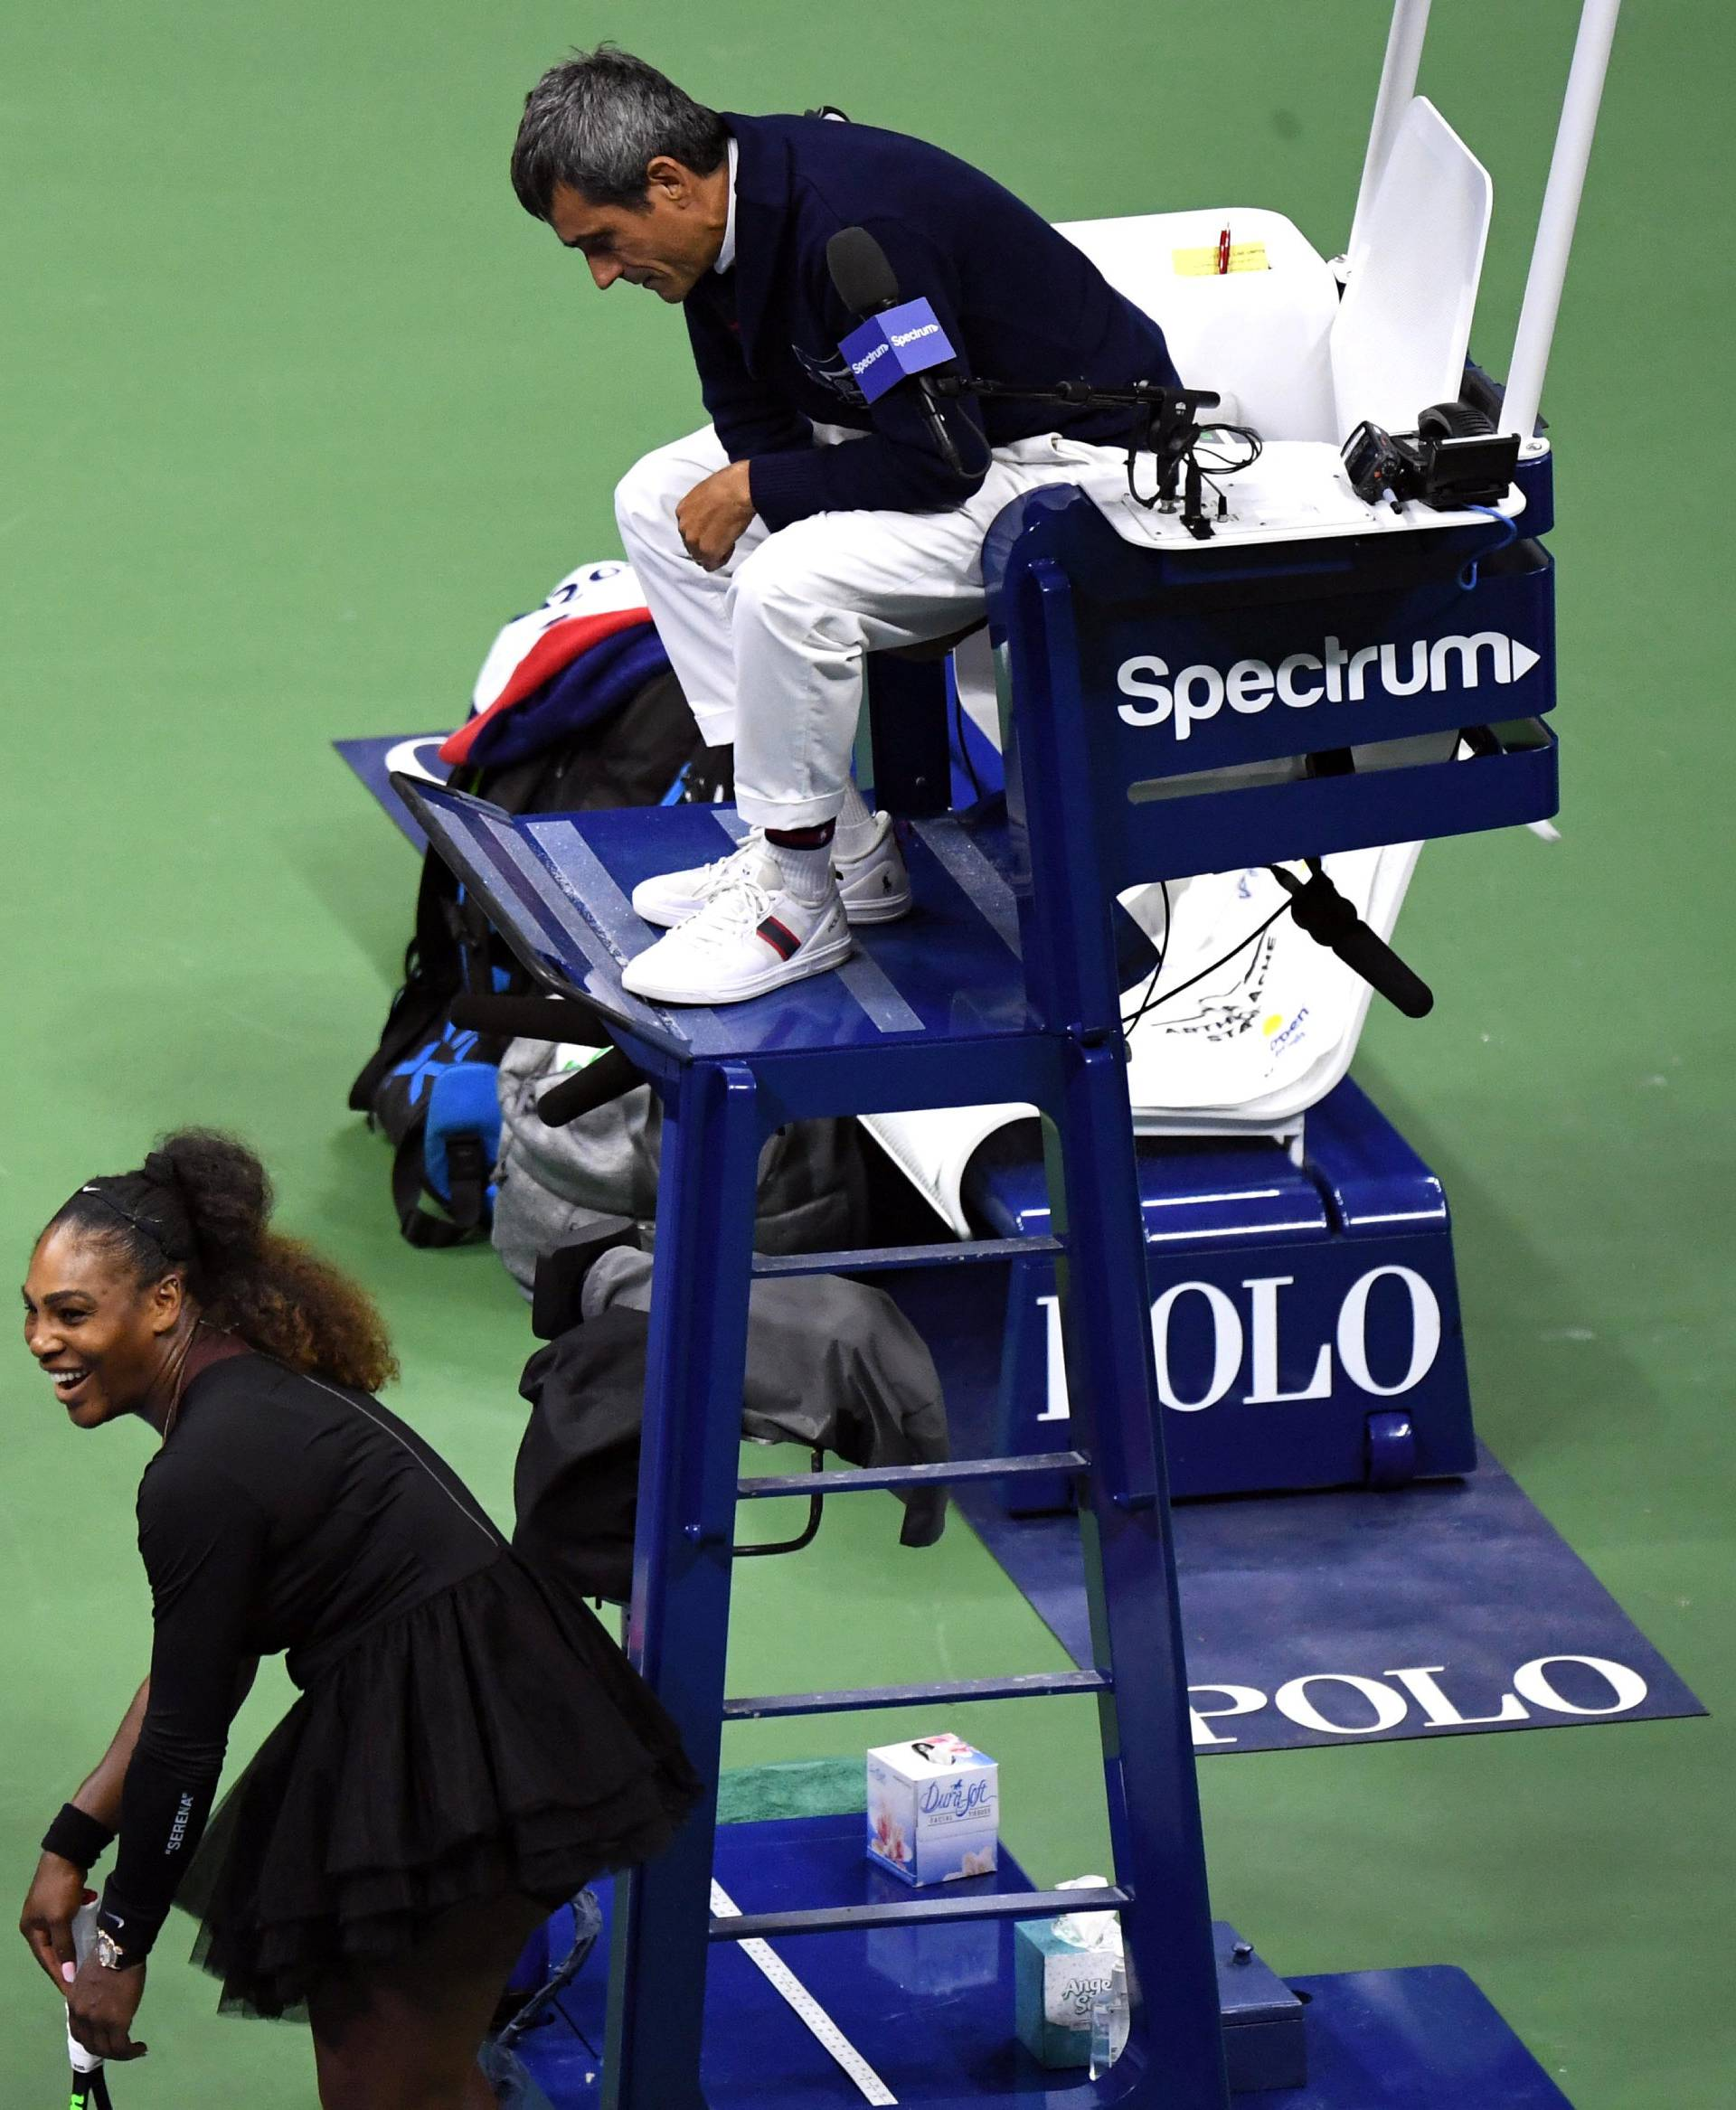 FILE PHOTO:  Osaka of Japan, Williams of the United States, and chair umpire Ramos talk after Ramos charges Williams with a game penalty in New York